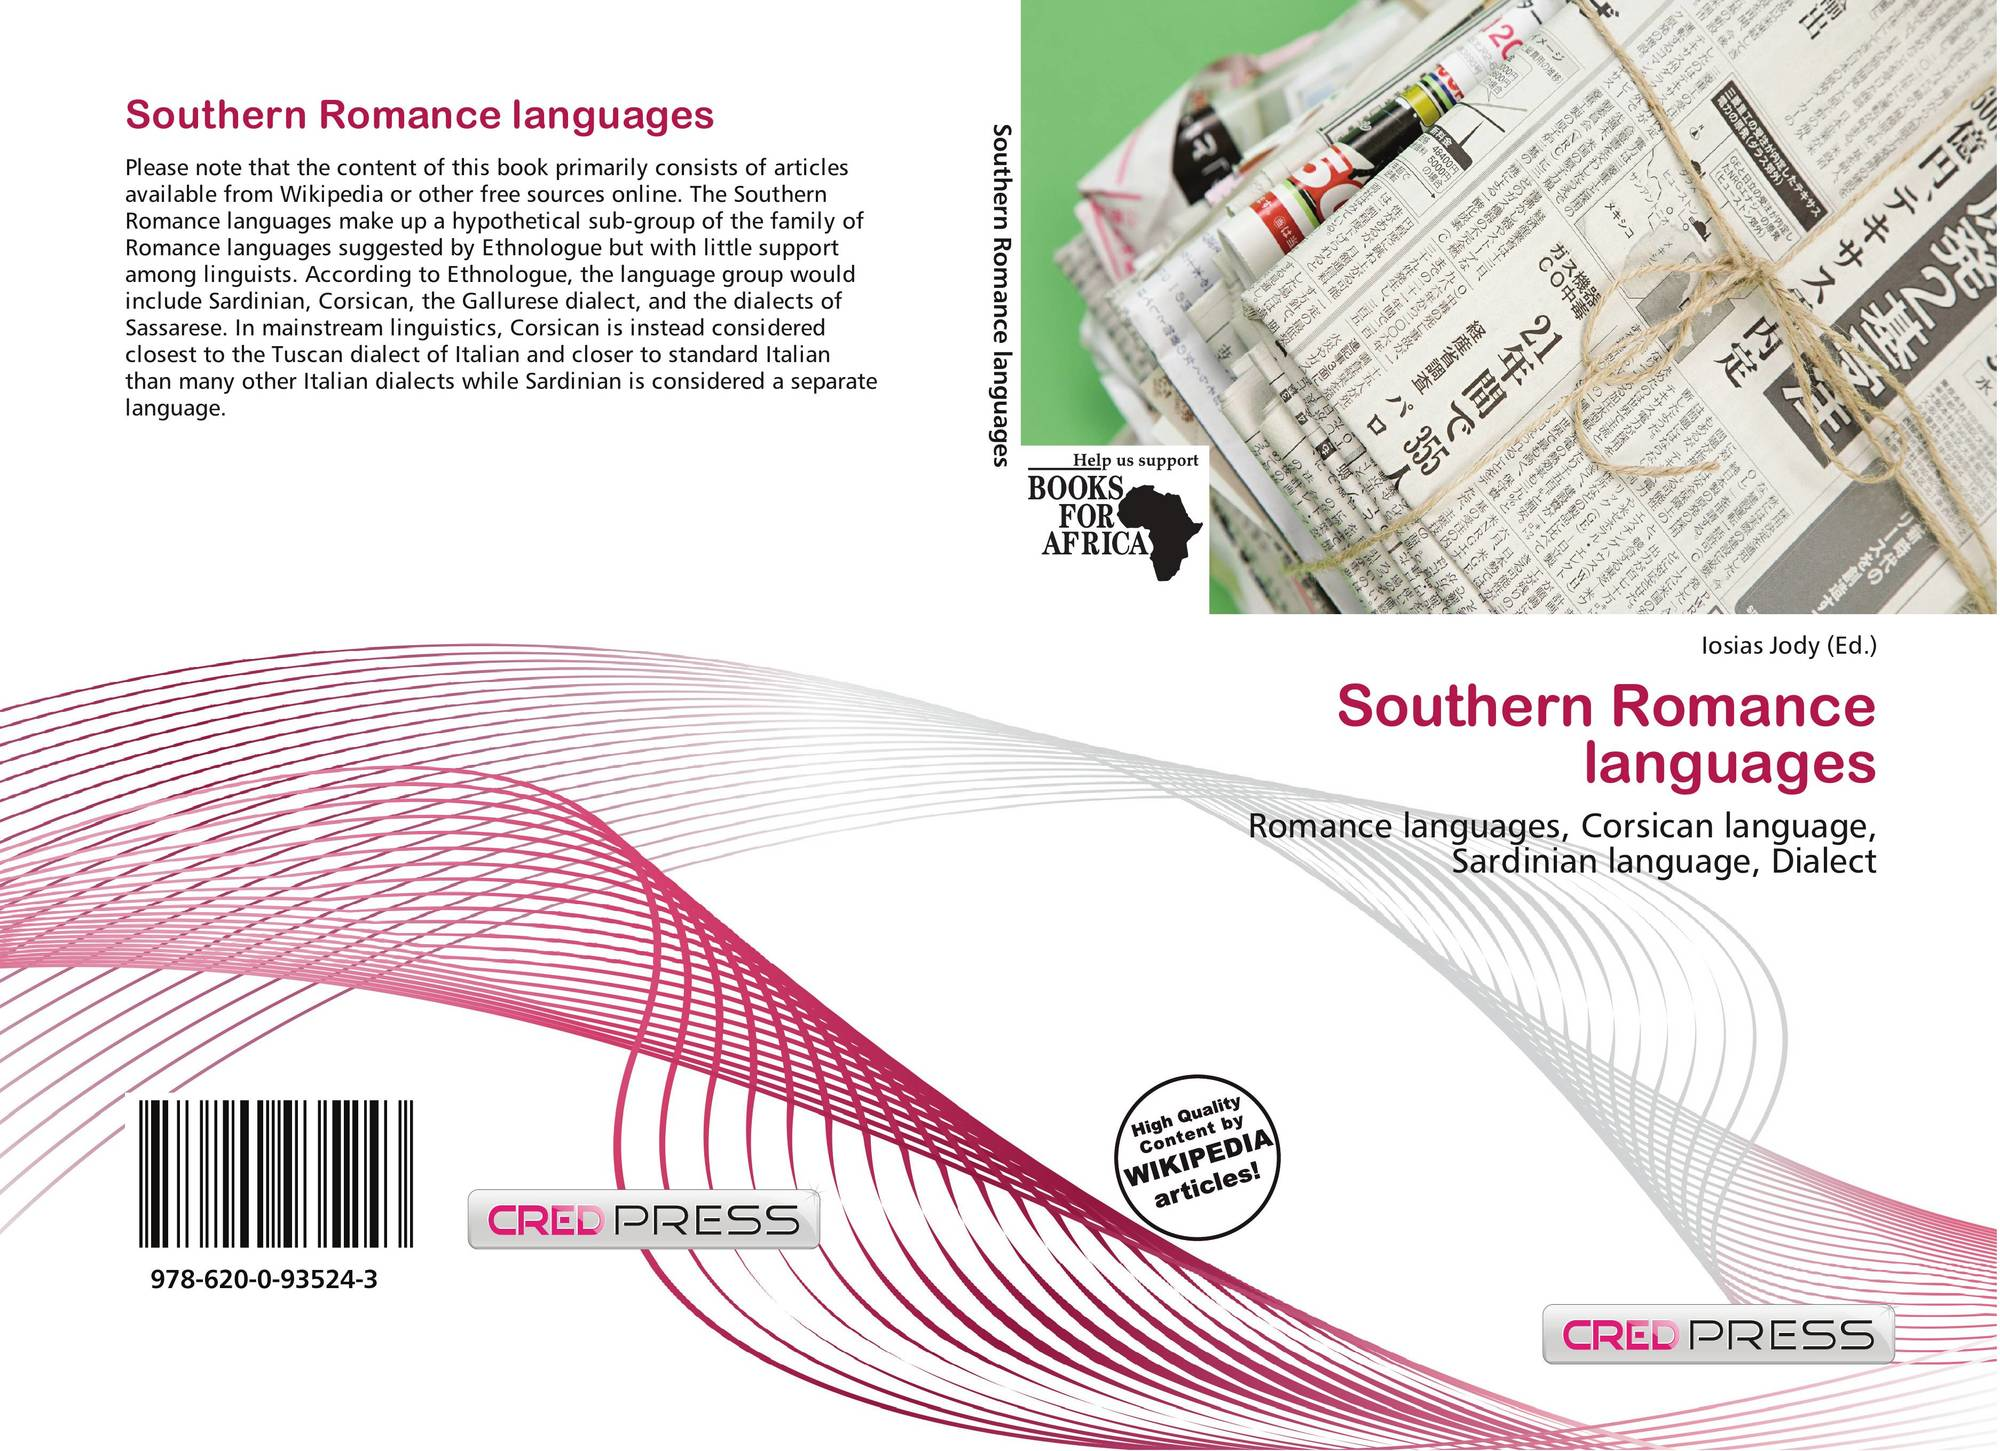 romantic language It's what we do increase your love language iq with this crash course in romance languages, just in time for valentine's day why are they mango's religious and scholarly language collection offers a fun and easy latin course so that you can be both scholarly and romantic it doesn't get much better.